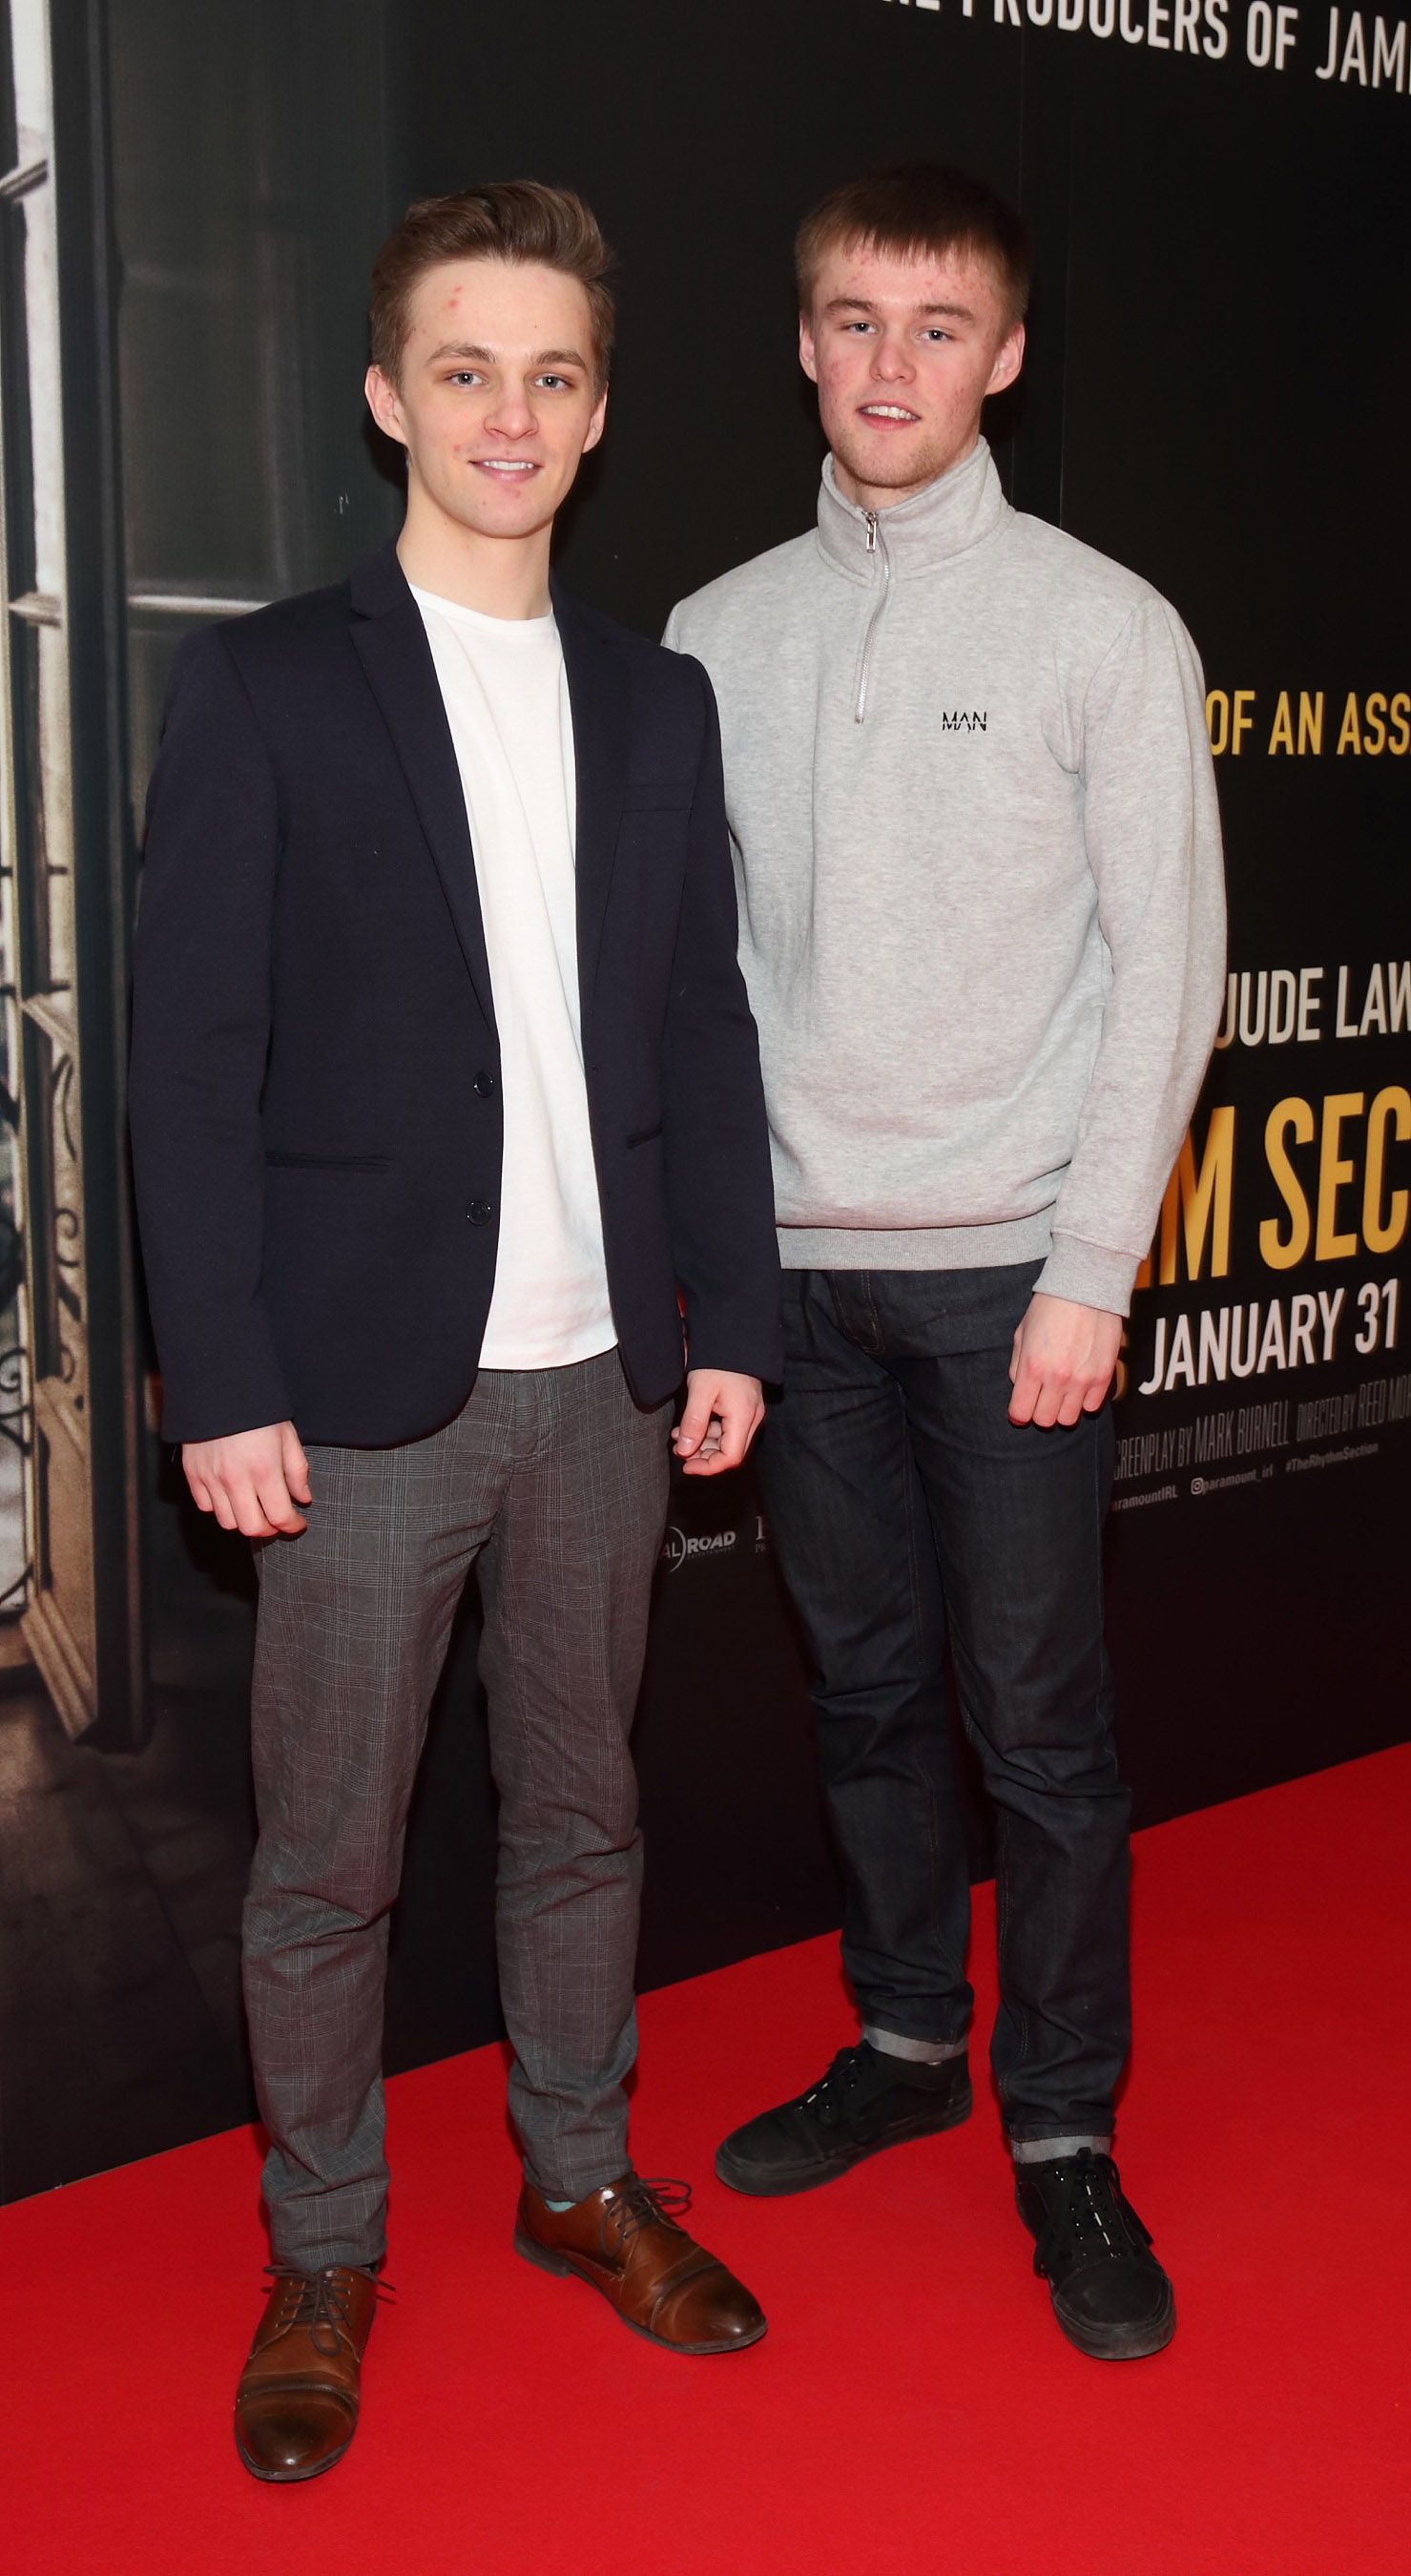 David Duggan and Conor Duggan pictured at the special preview screening of The Rhythm Section at the Light House Cinema, Dublin. Pic: Brian McEvoy Photography